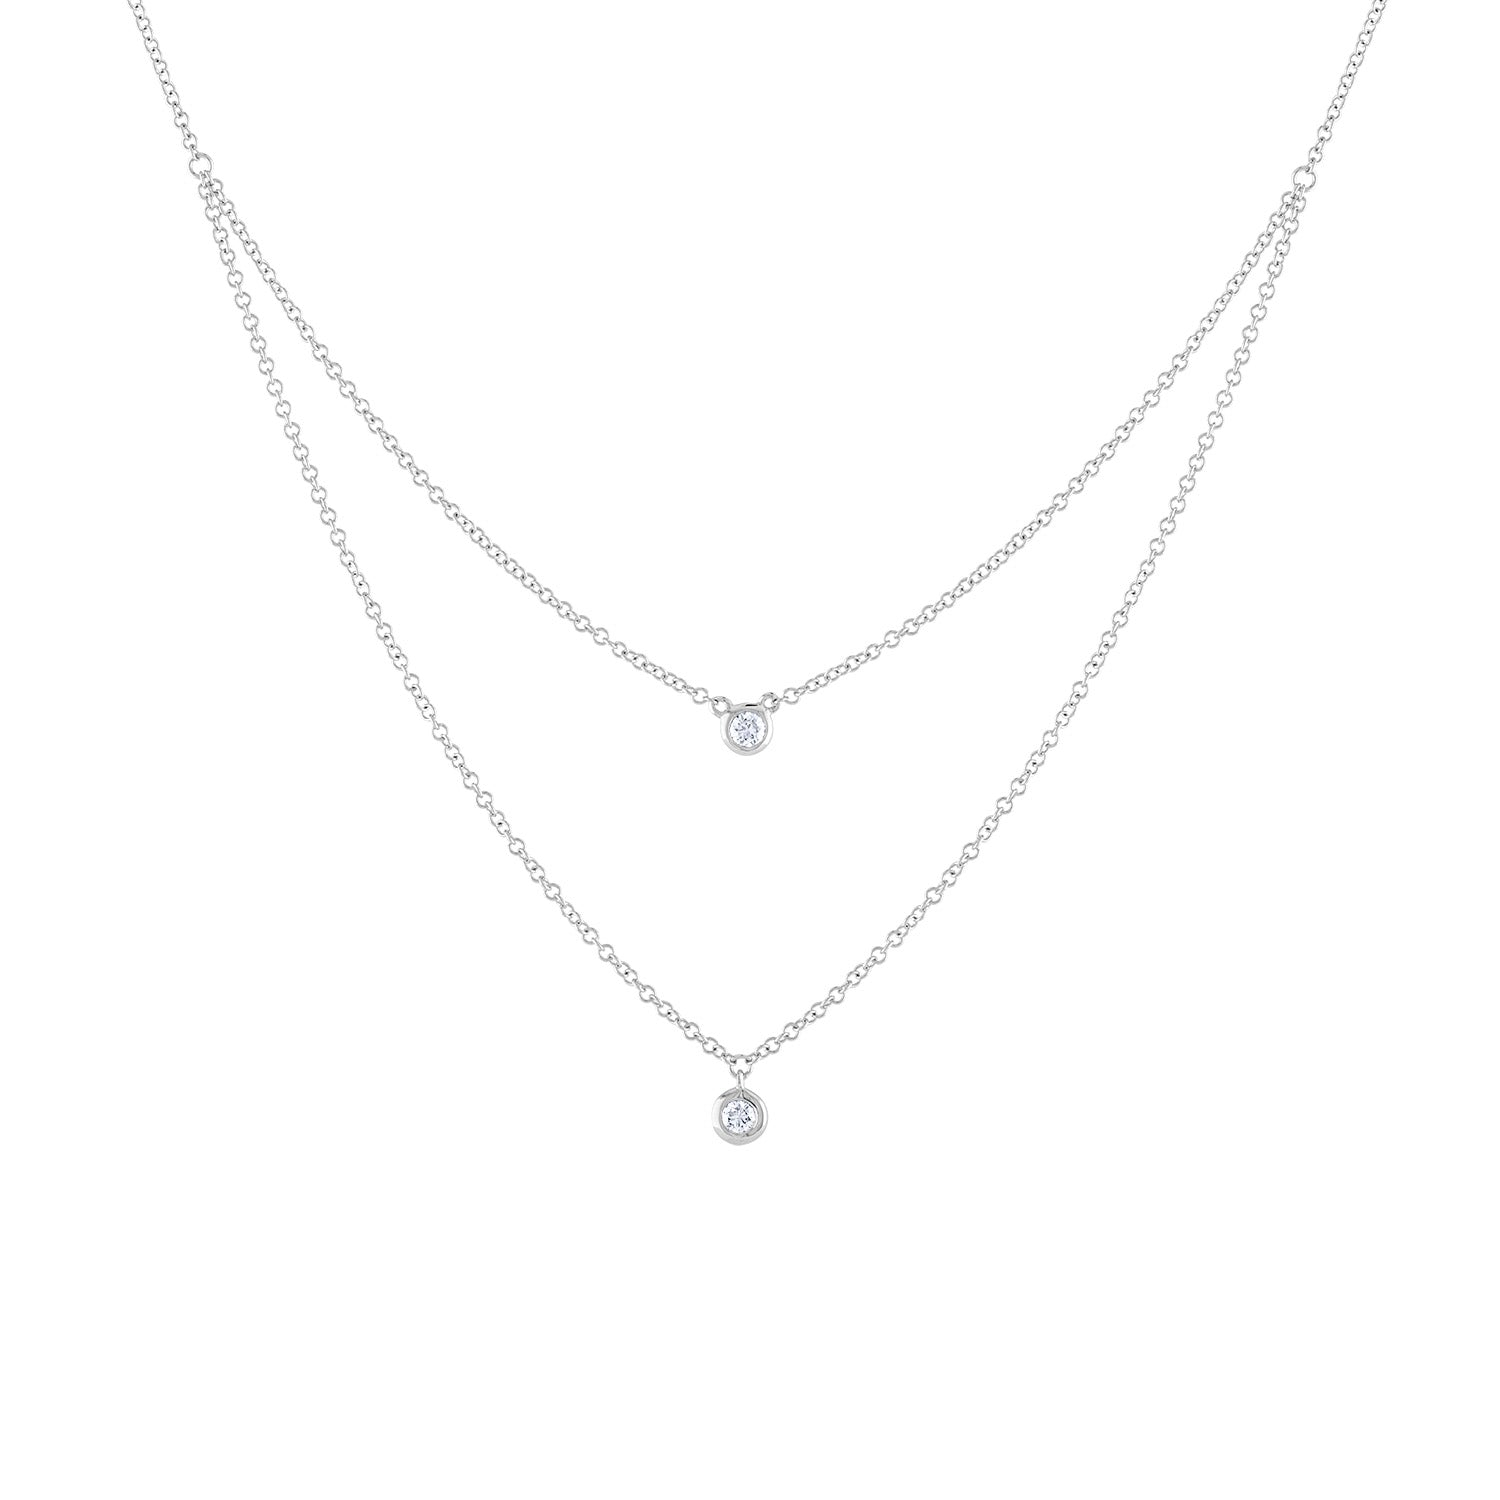 14k White Gold diamond double bezel necklace